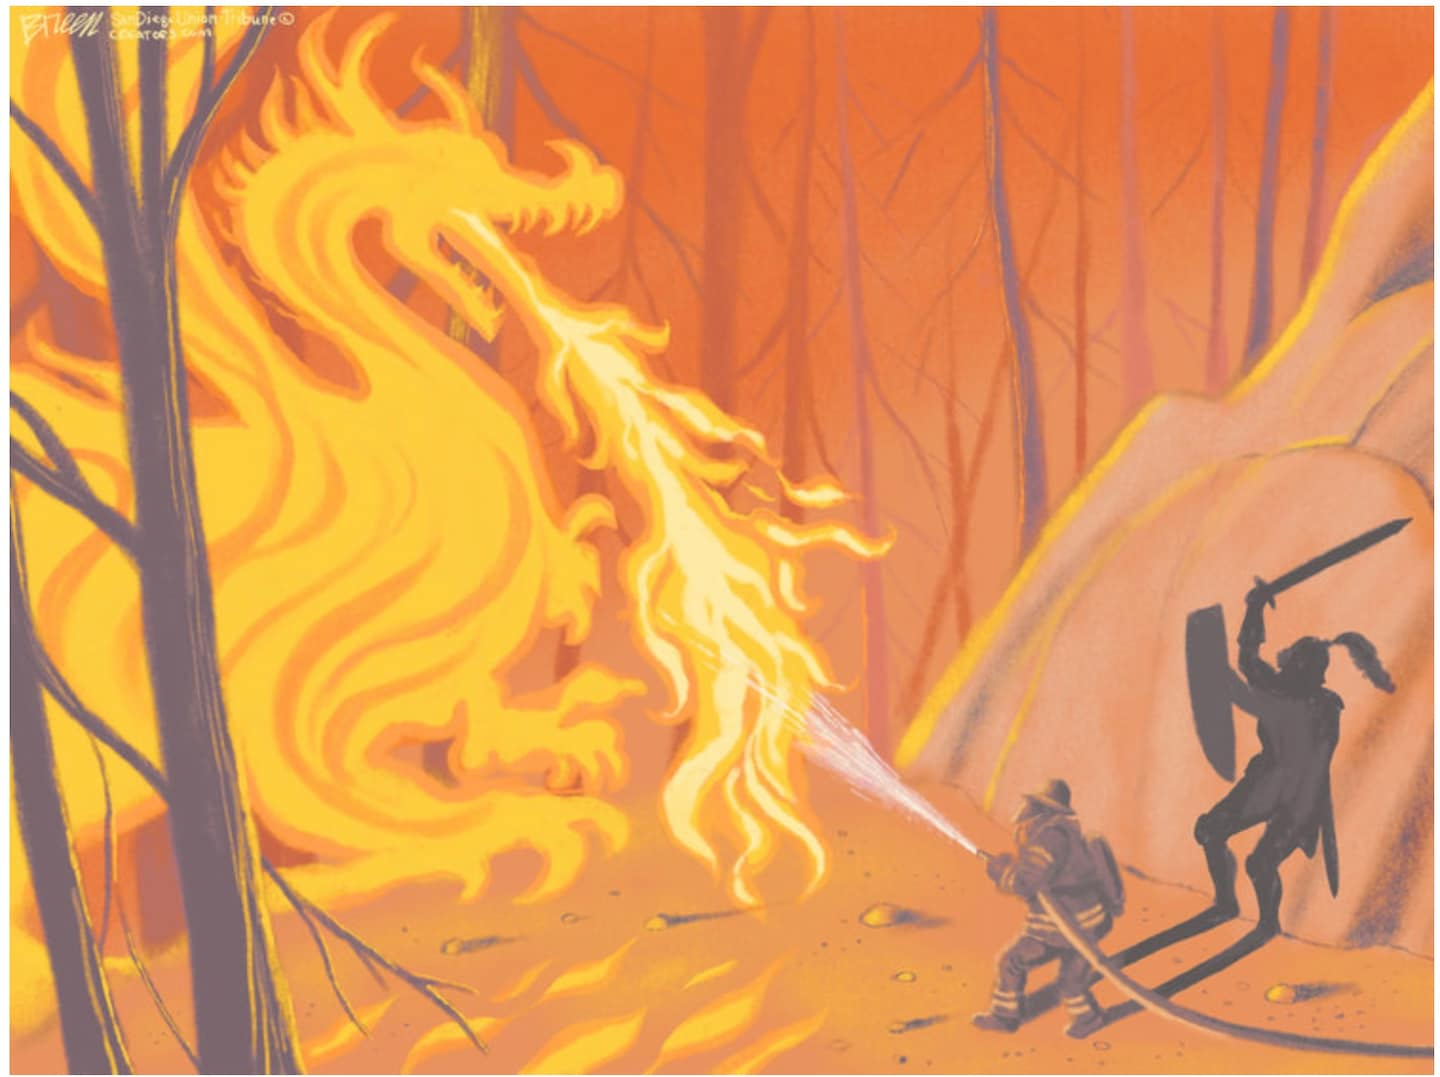 How West Coast cartoonists deliver powerful art from the wildfires